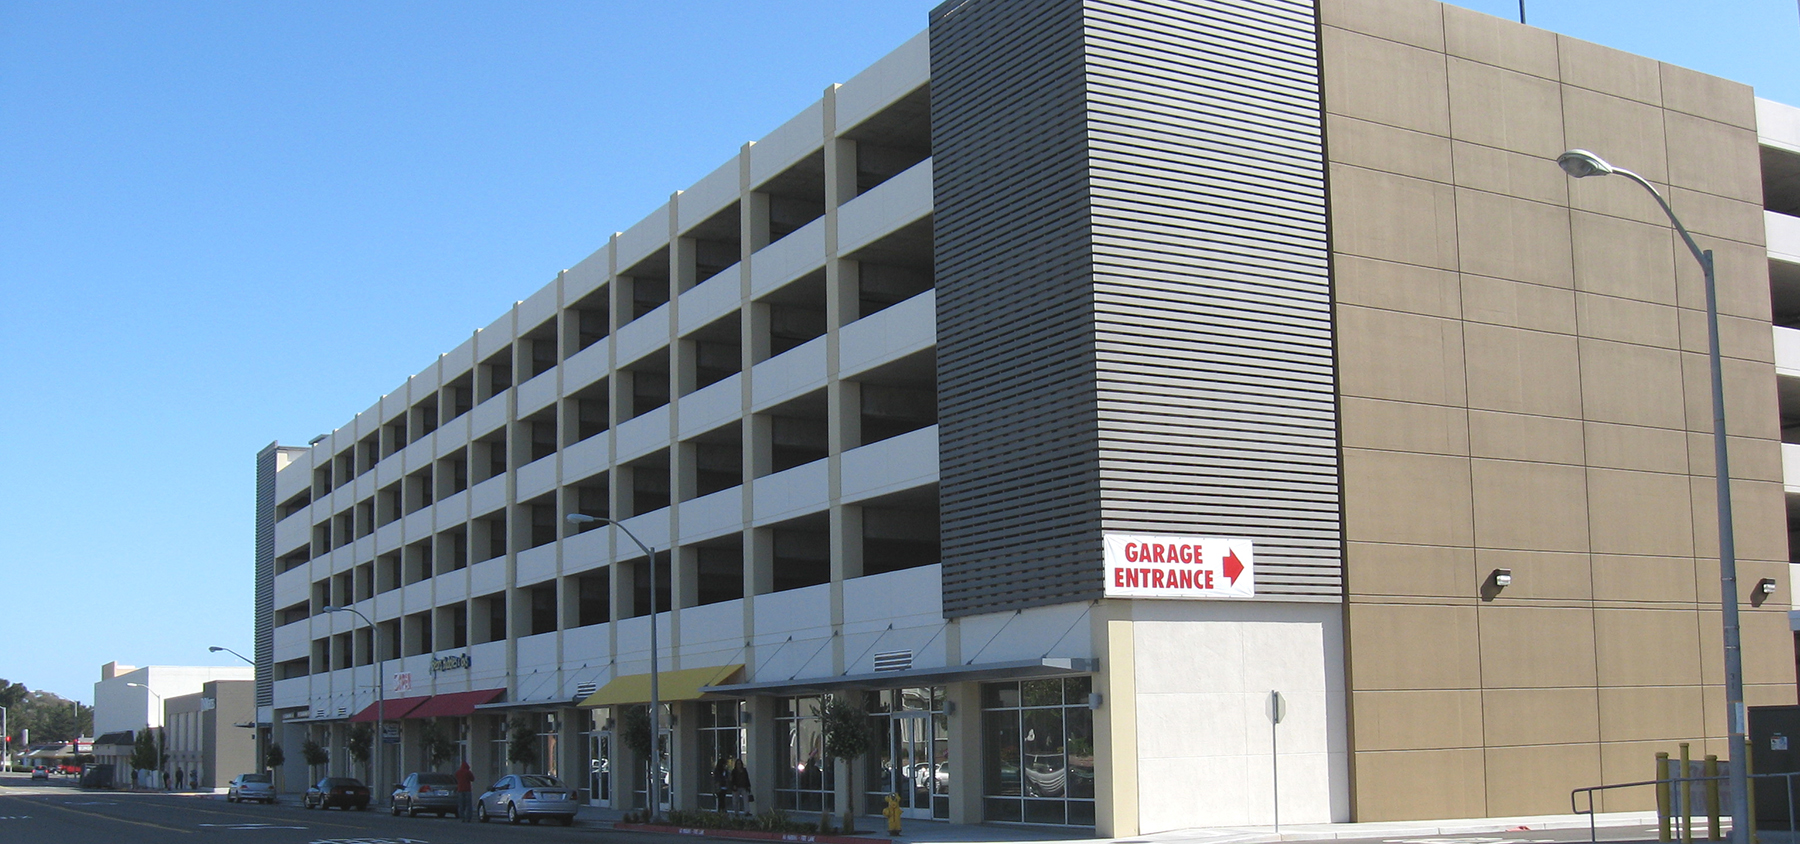 Westlake Shopping Center Lake Merced Parking Structure